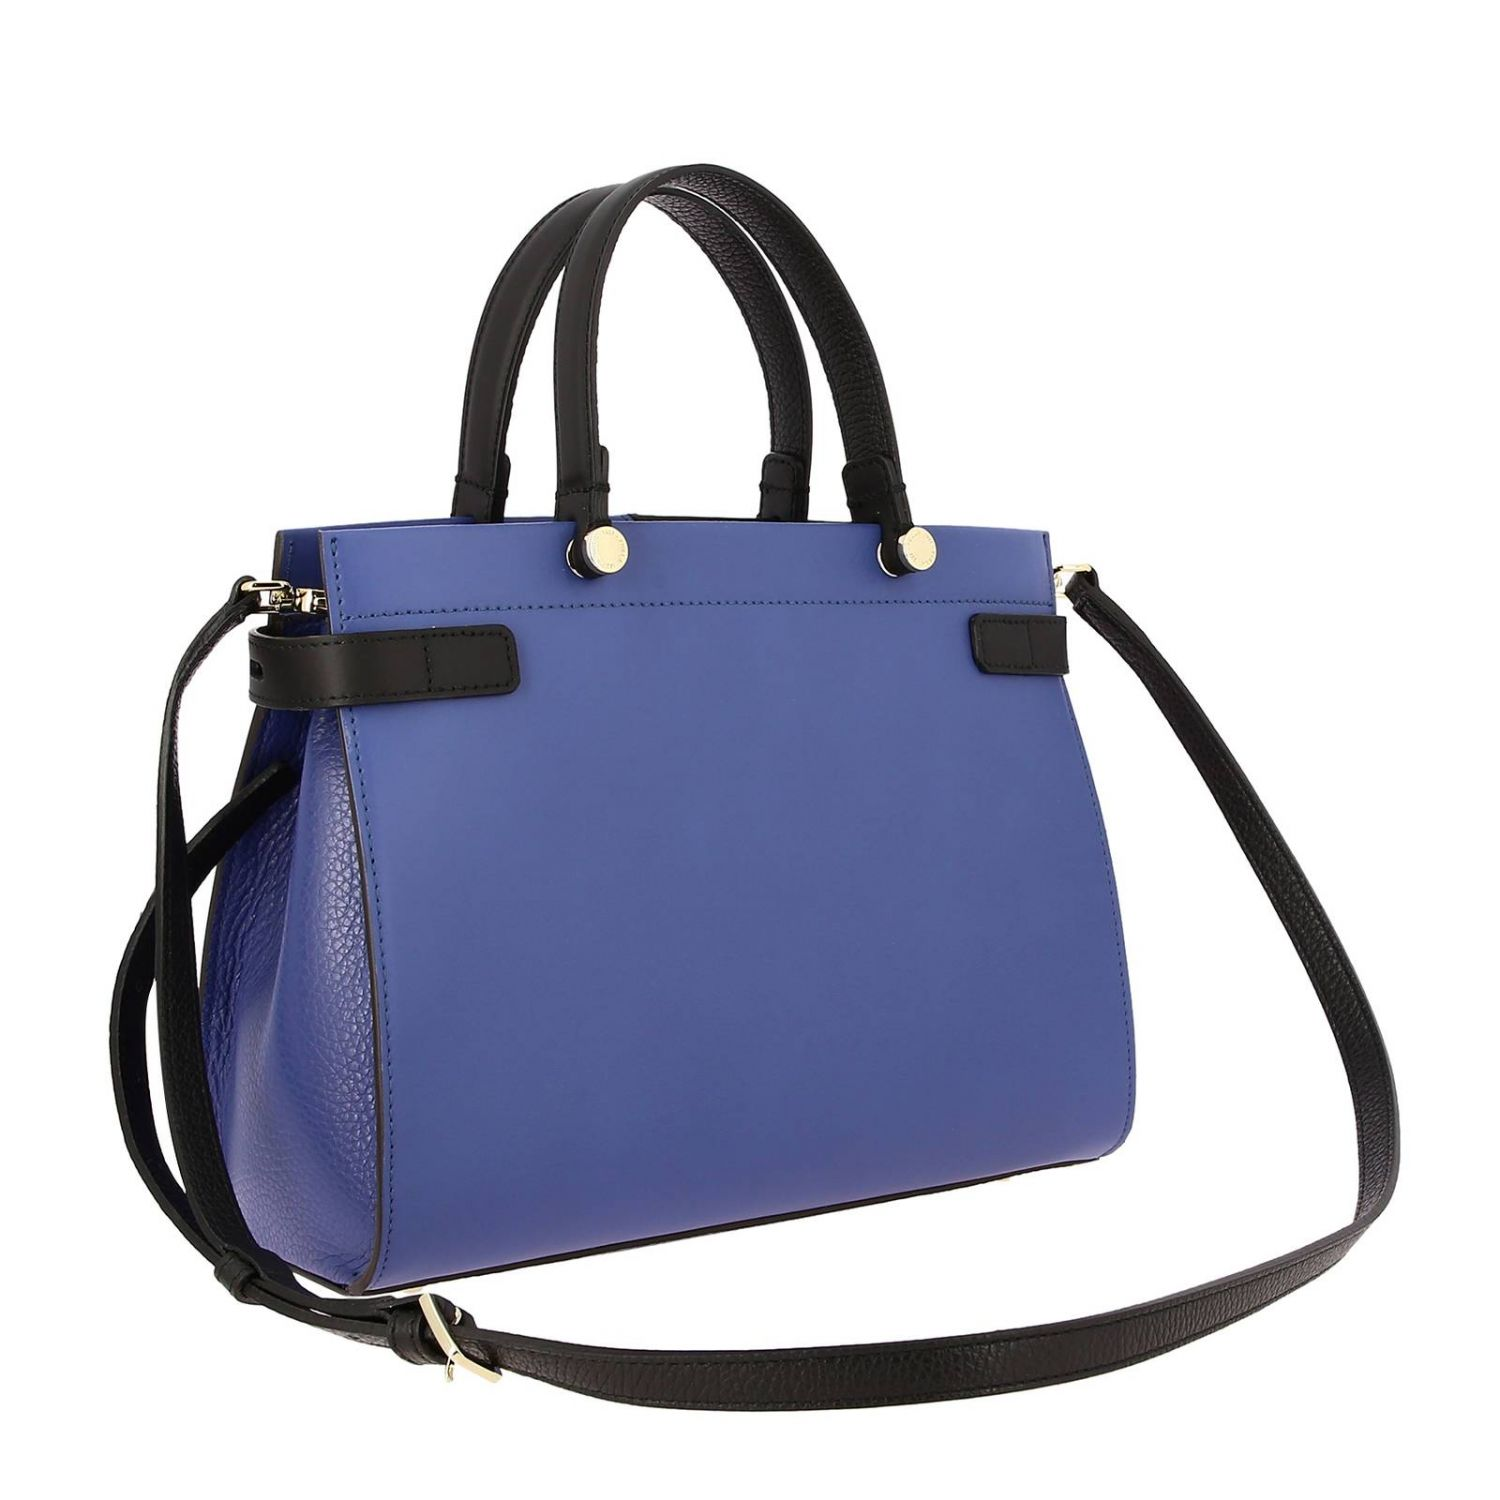 Borsa Lady Furla tote in pelle color block con logo pervinca 3